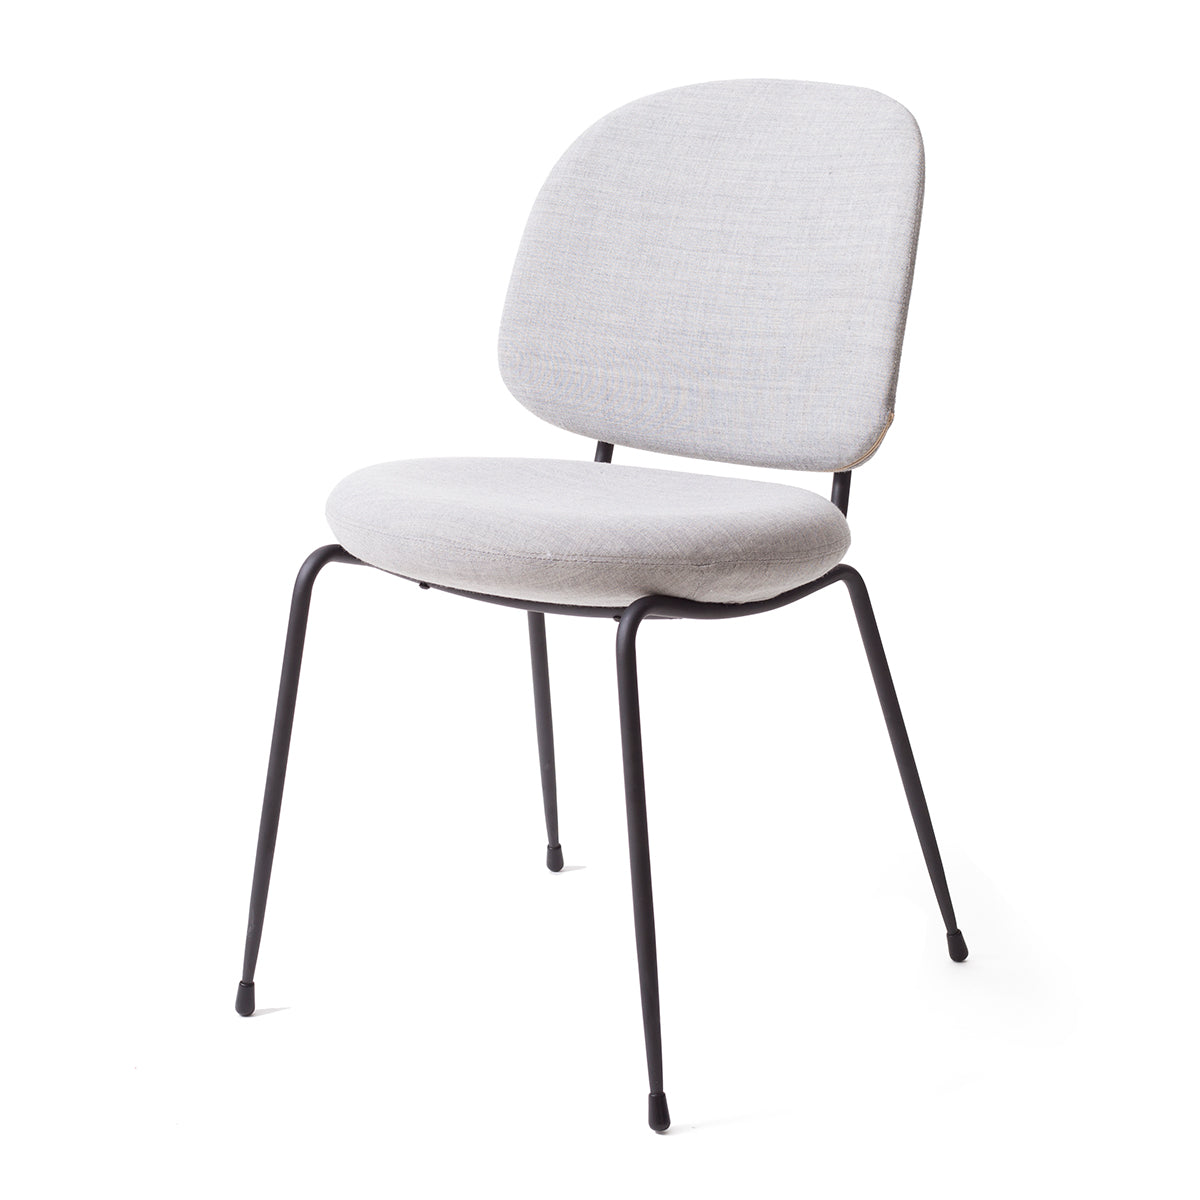 Industry Dining Chair - Stellar Works - Do Shop